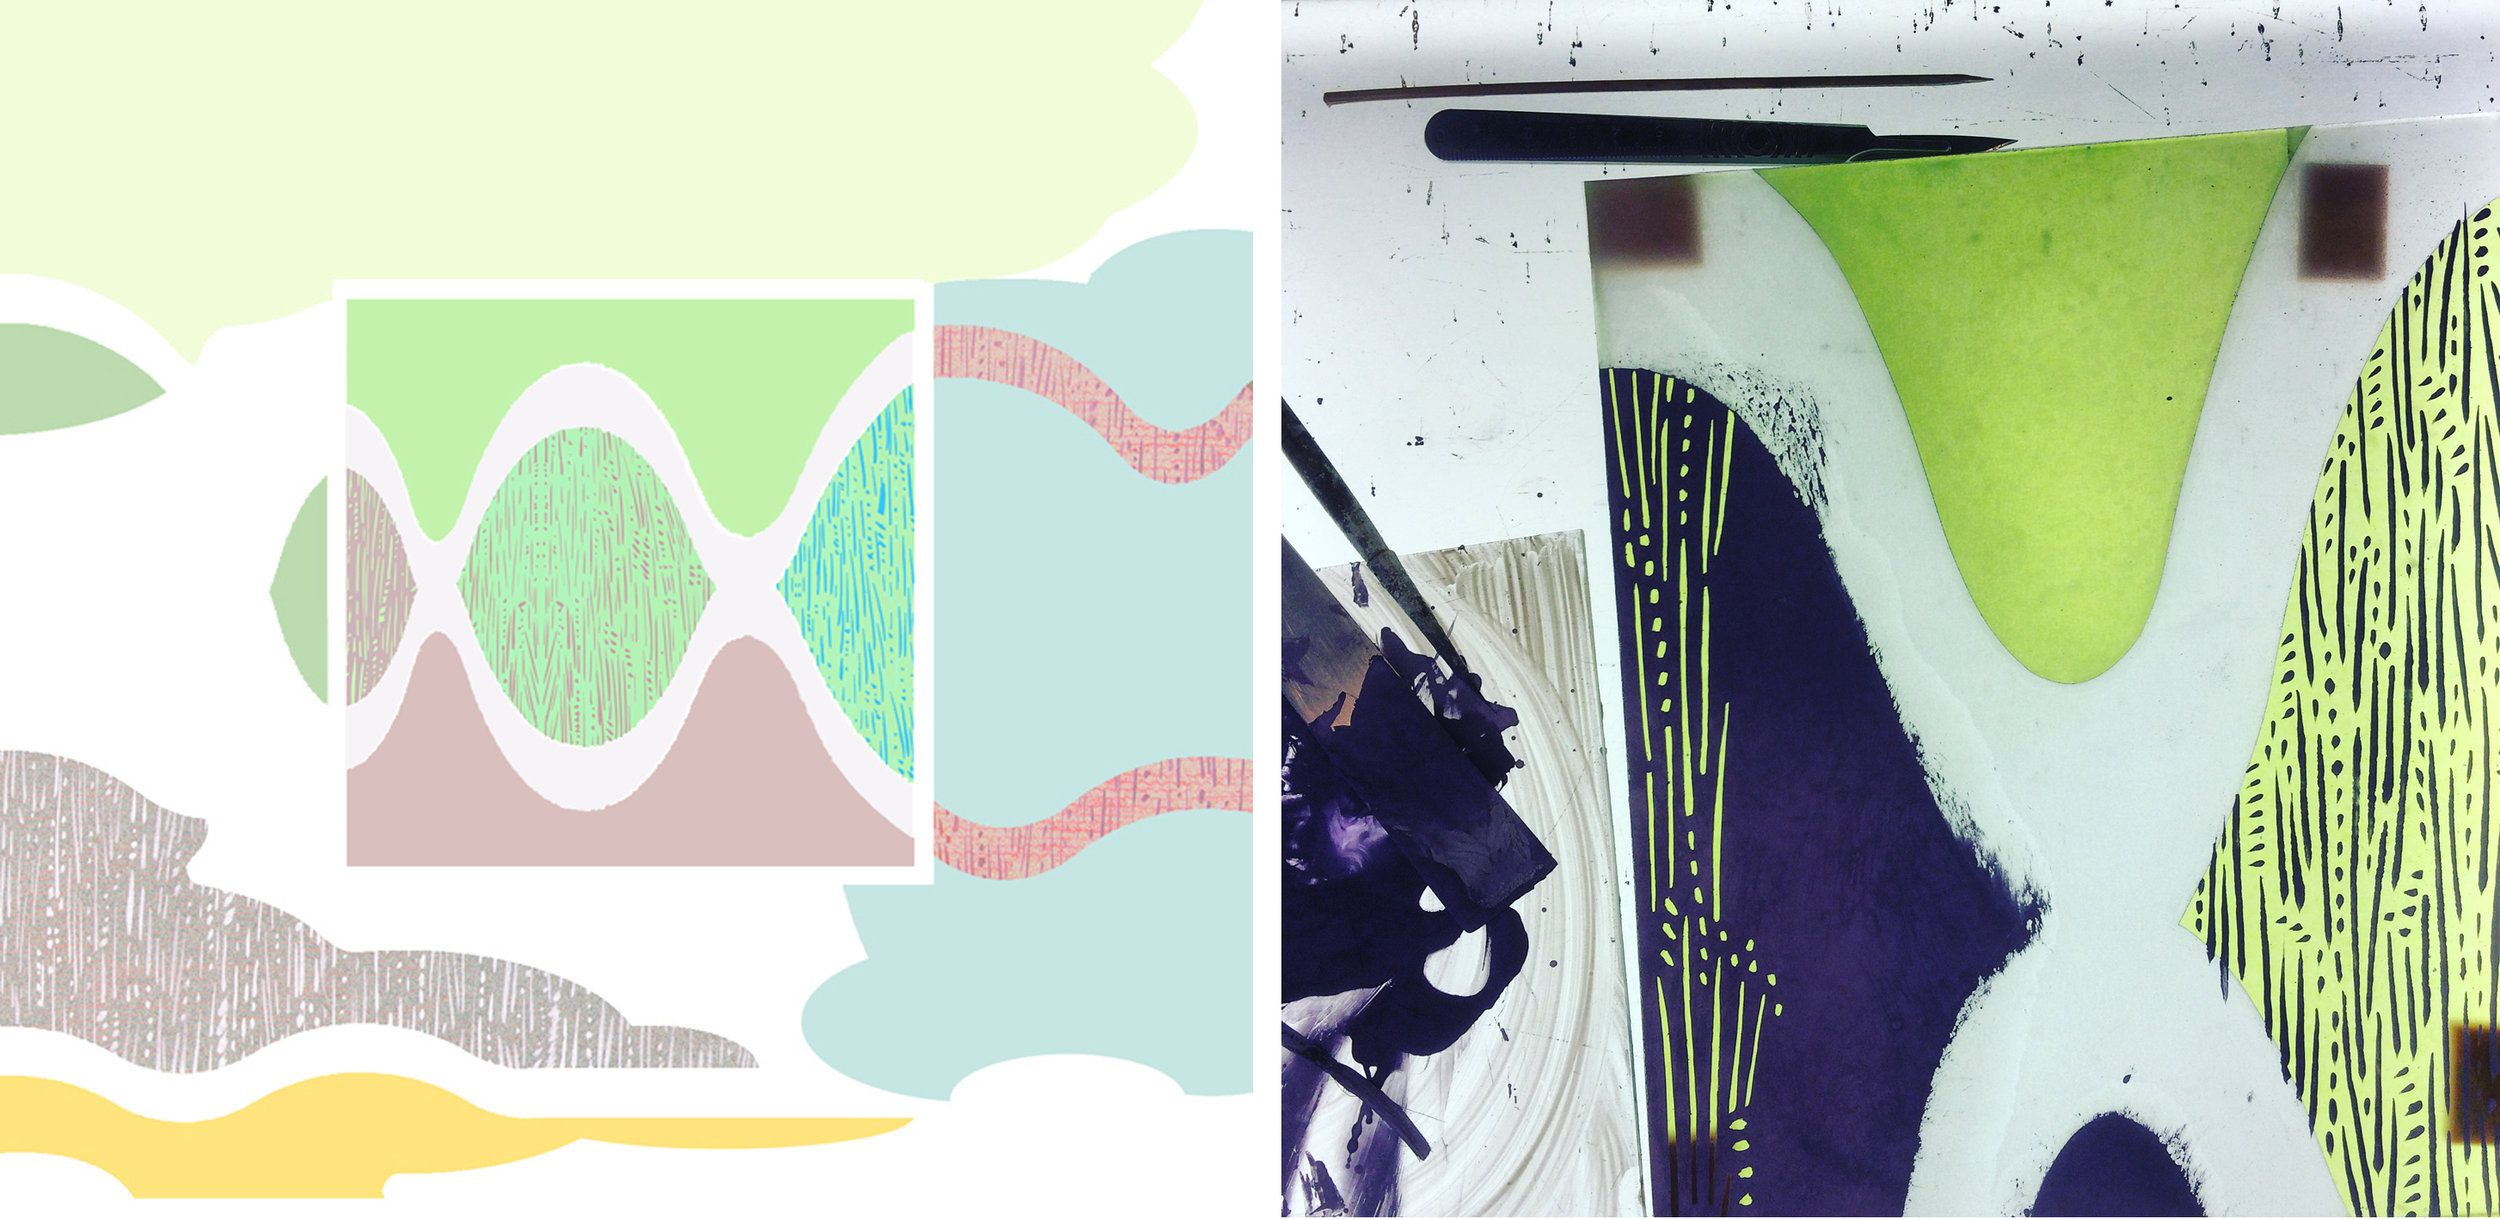 Design for entrance wall, digital wallpaper and glass square: glass sample in progress